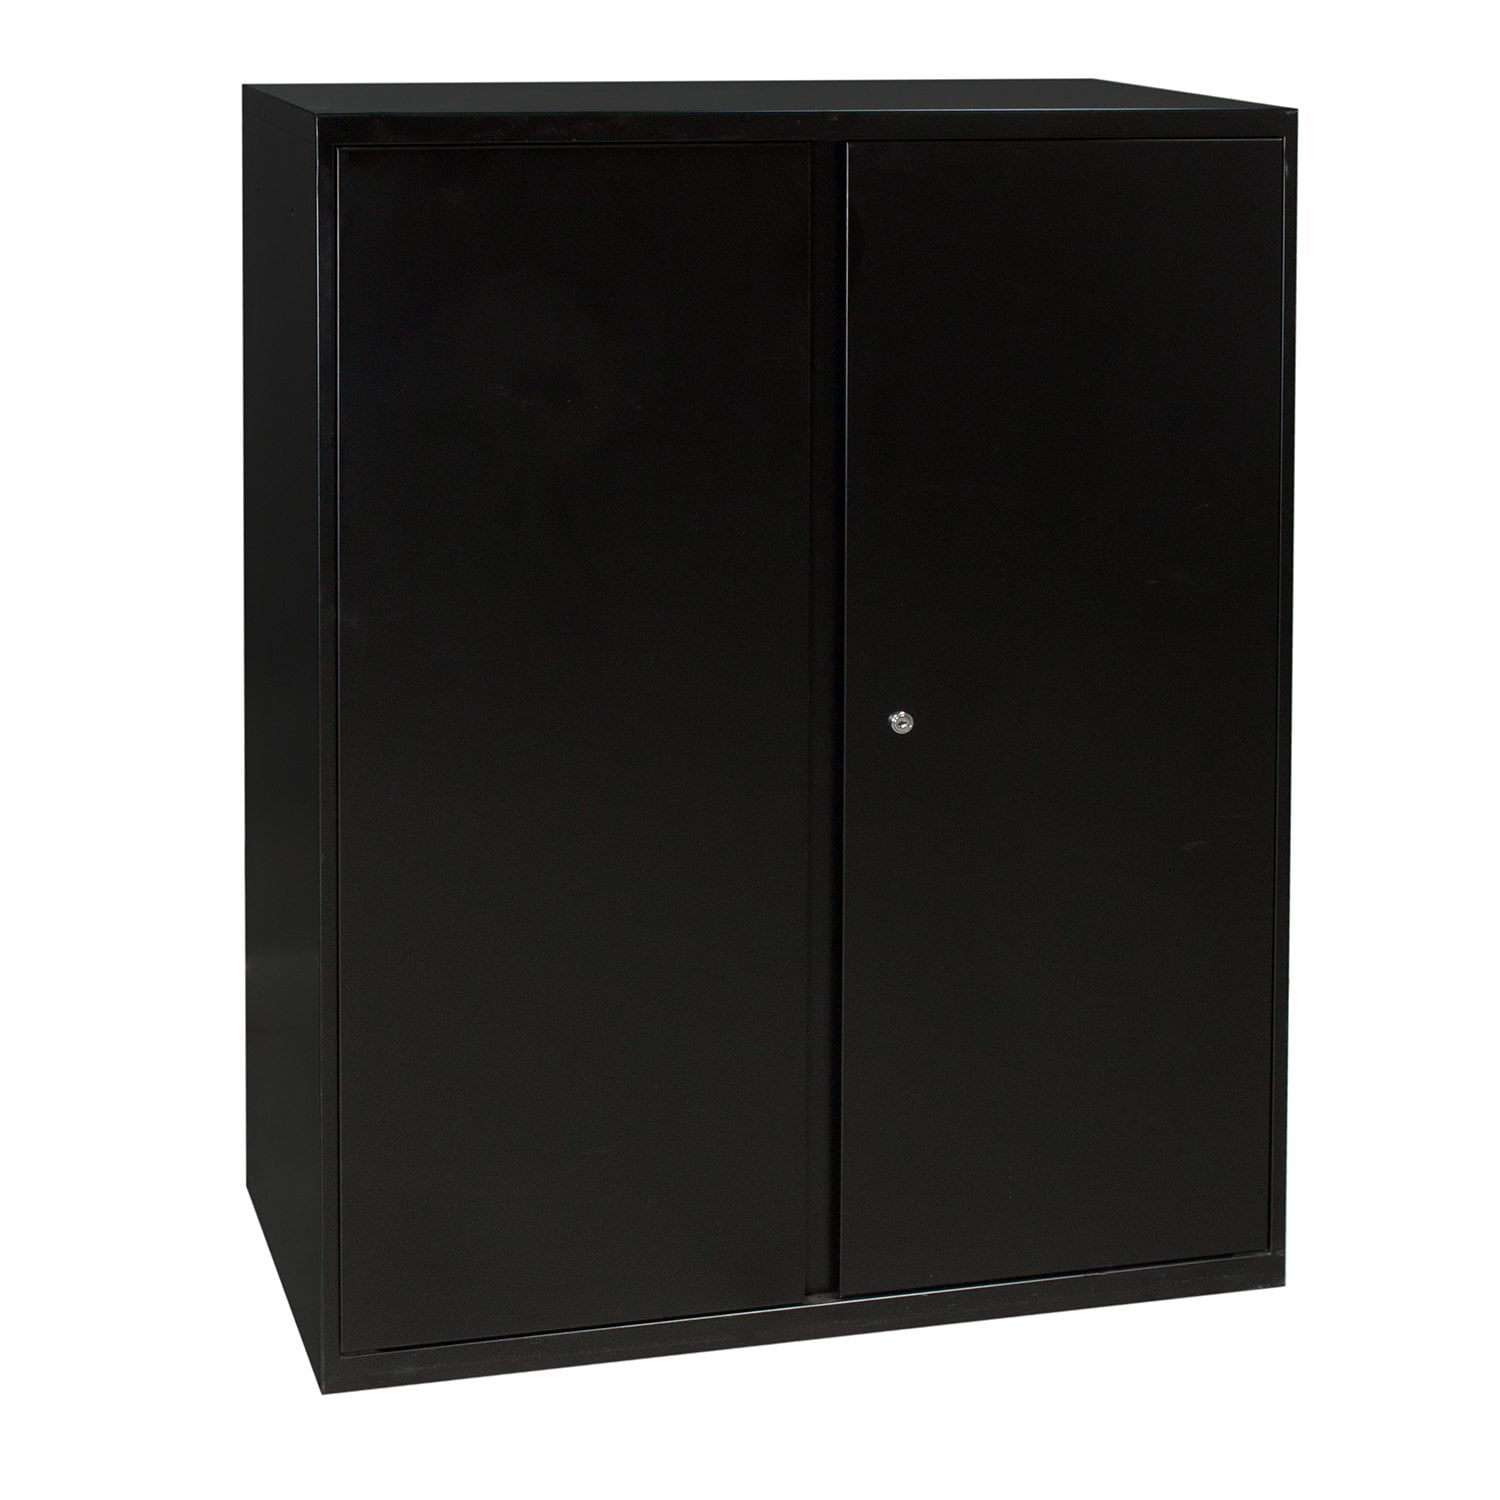 36 Inch Used Storage Cabinet, Black